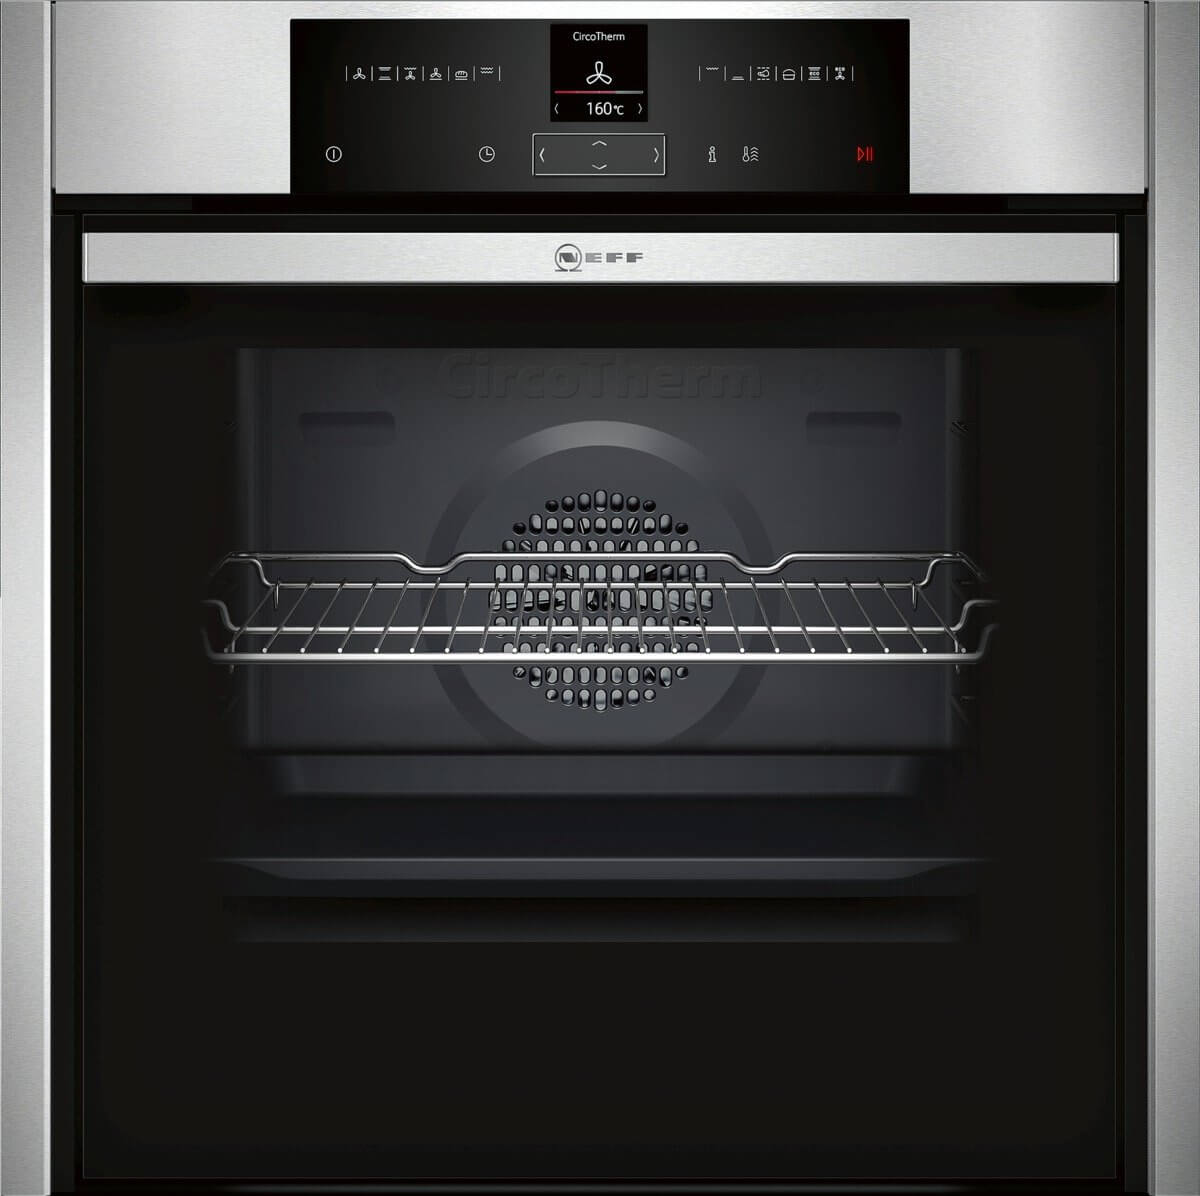 Backofen Neff Pyrolyse Test